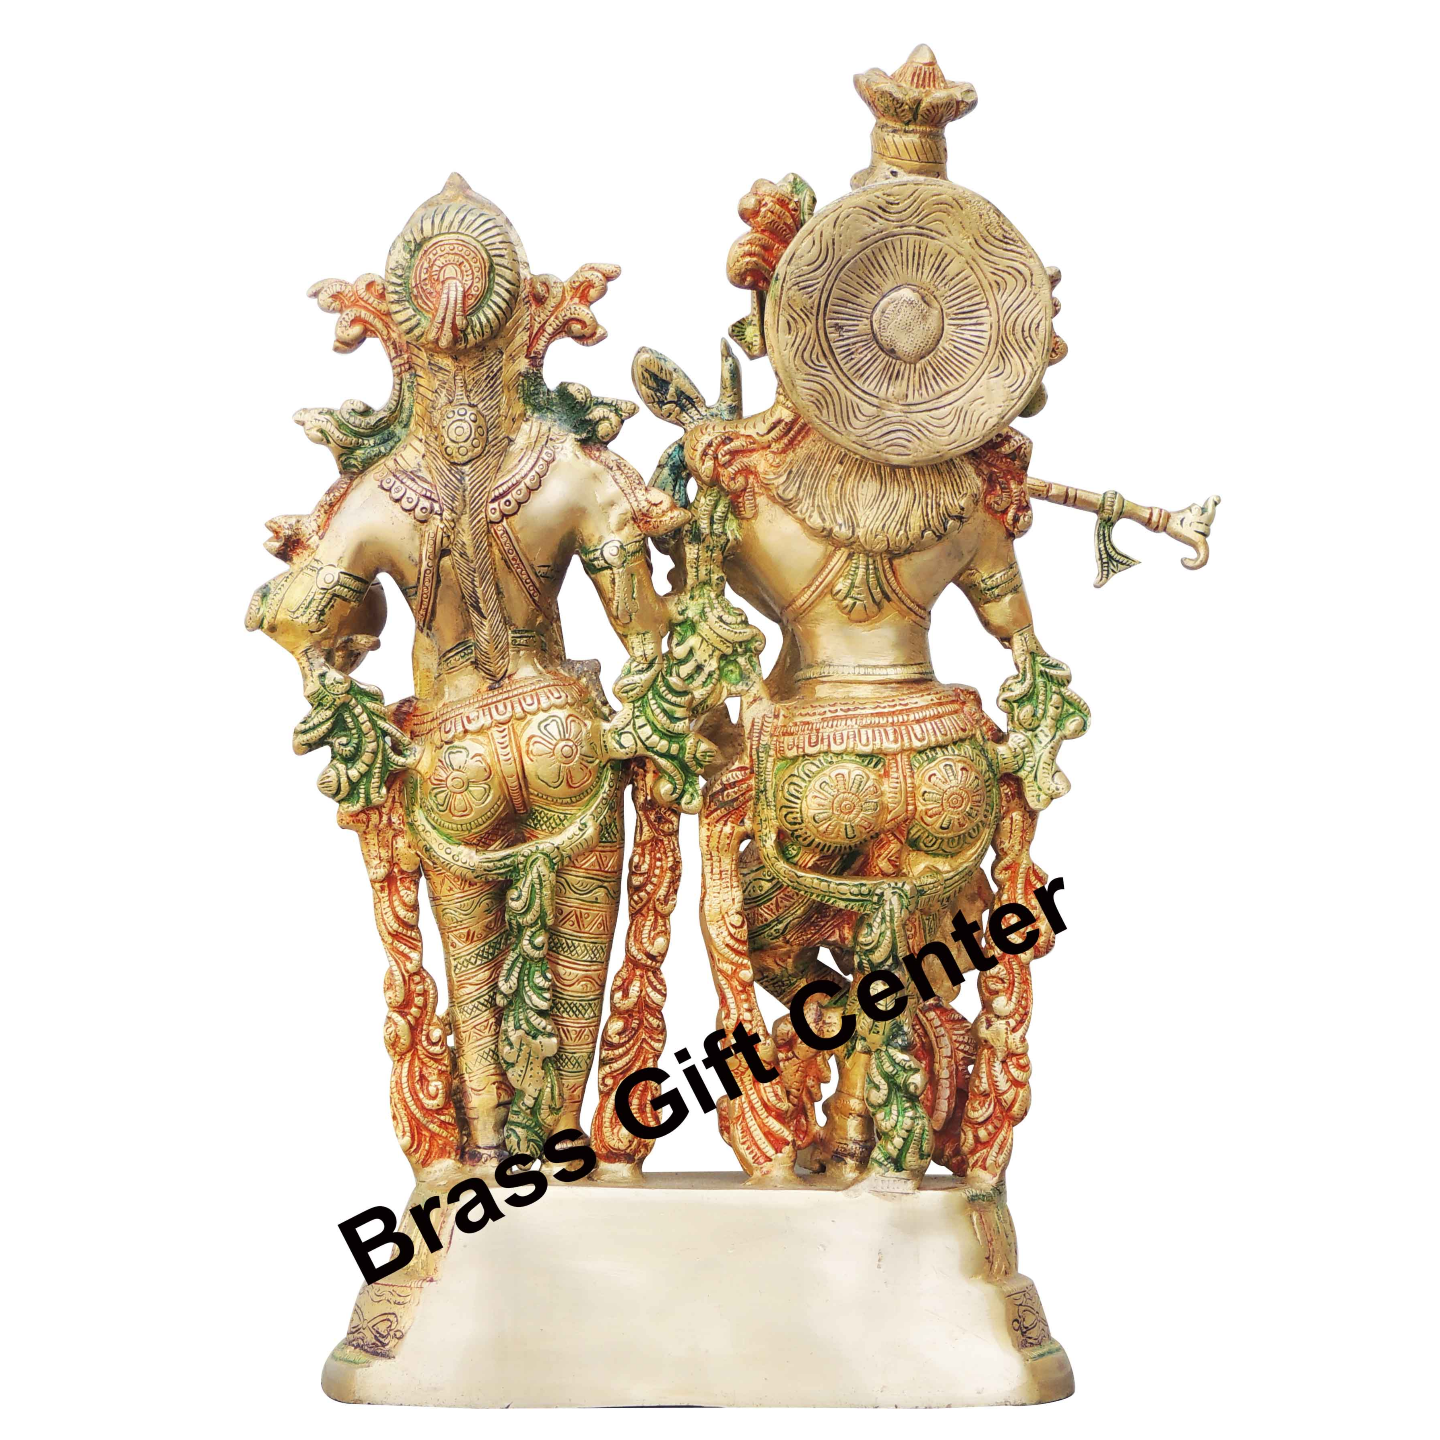 Brass Radha Krishna Staute Idol Murti in Multicolour lacquer finish - 10.5516.8 Inch  BS939 A